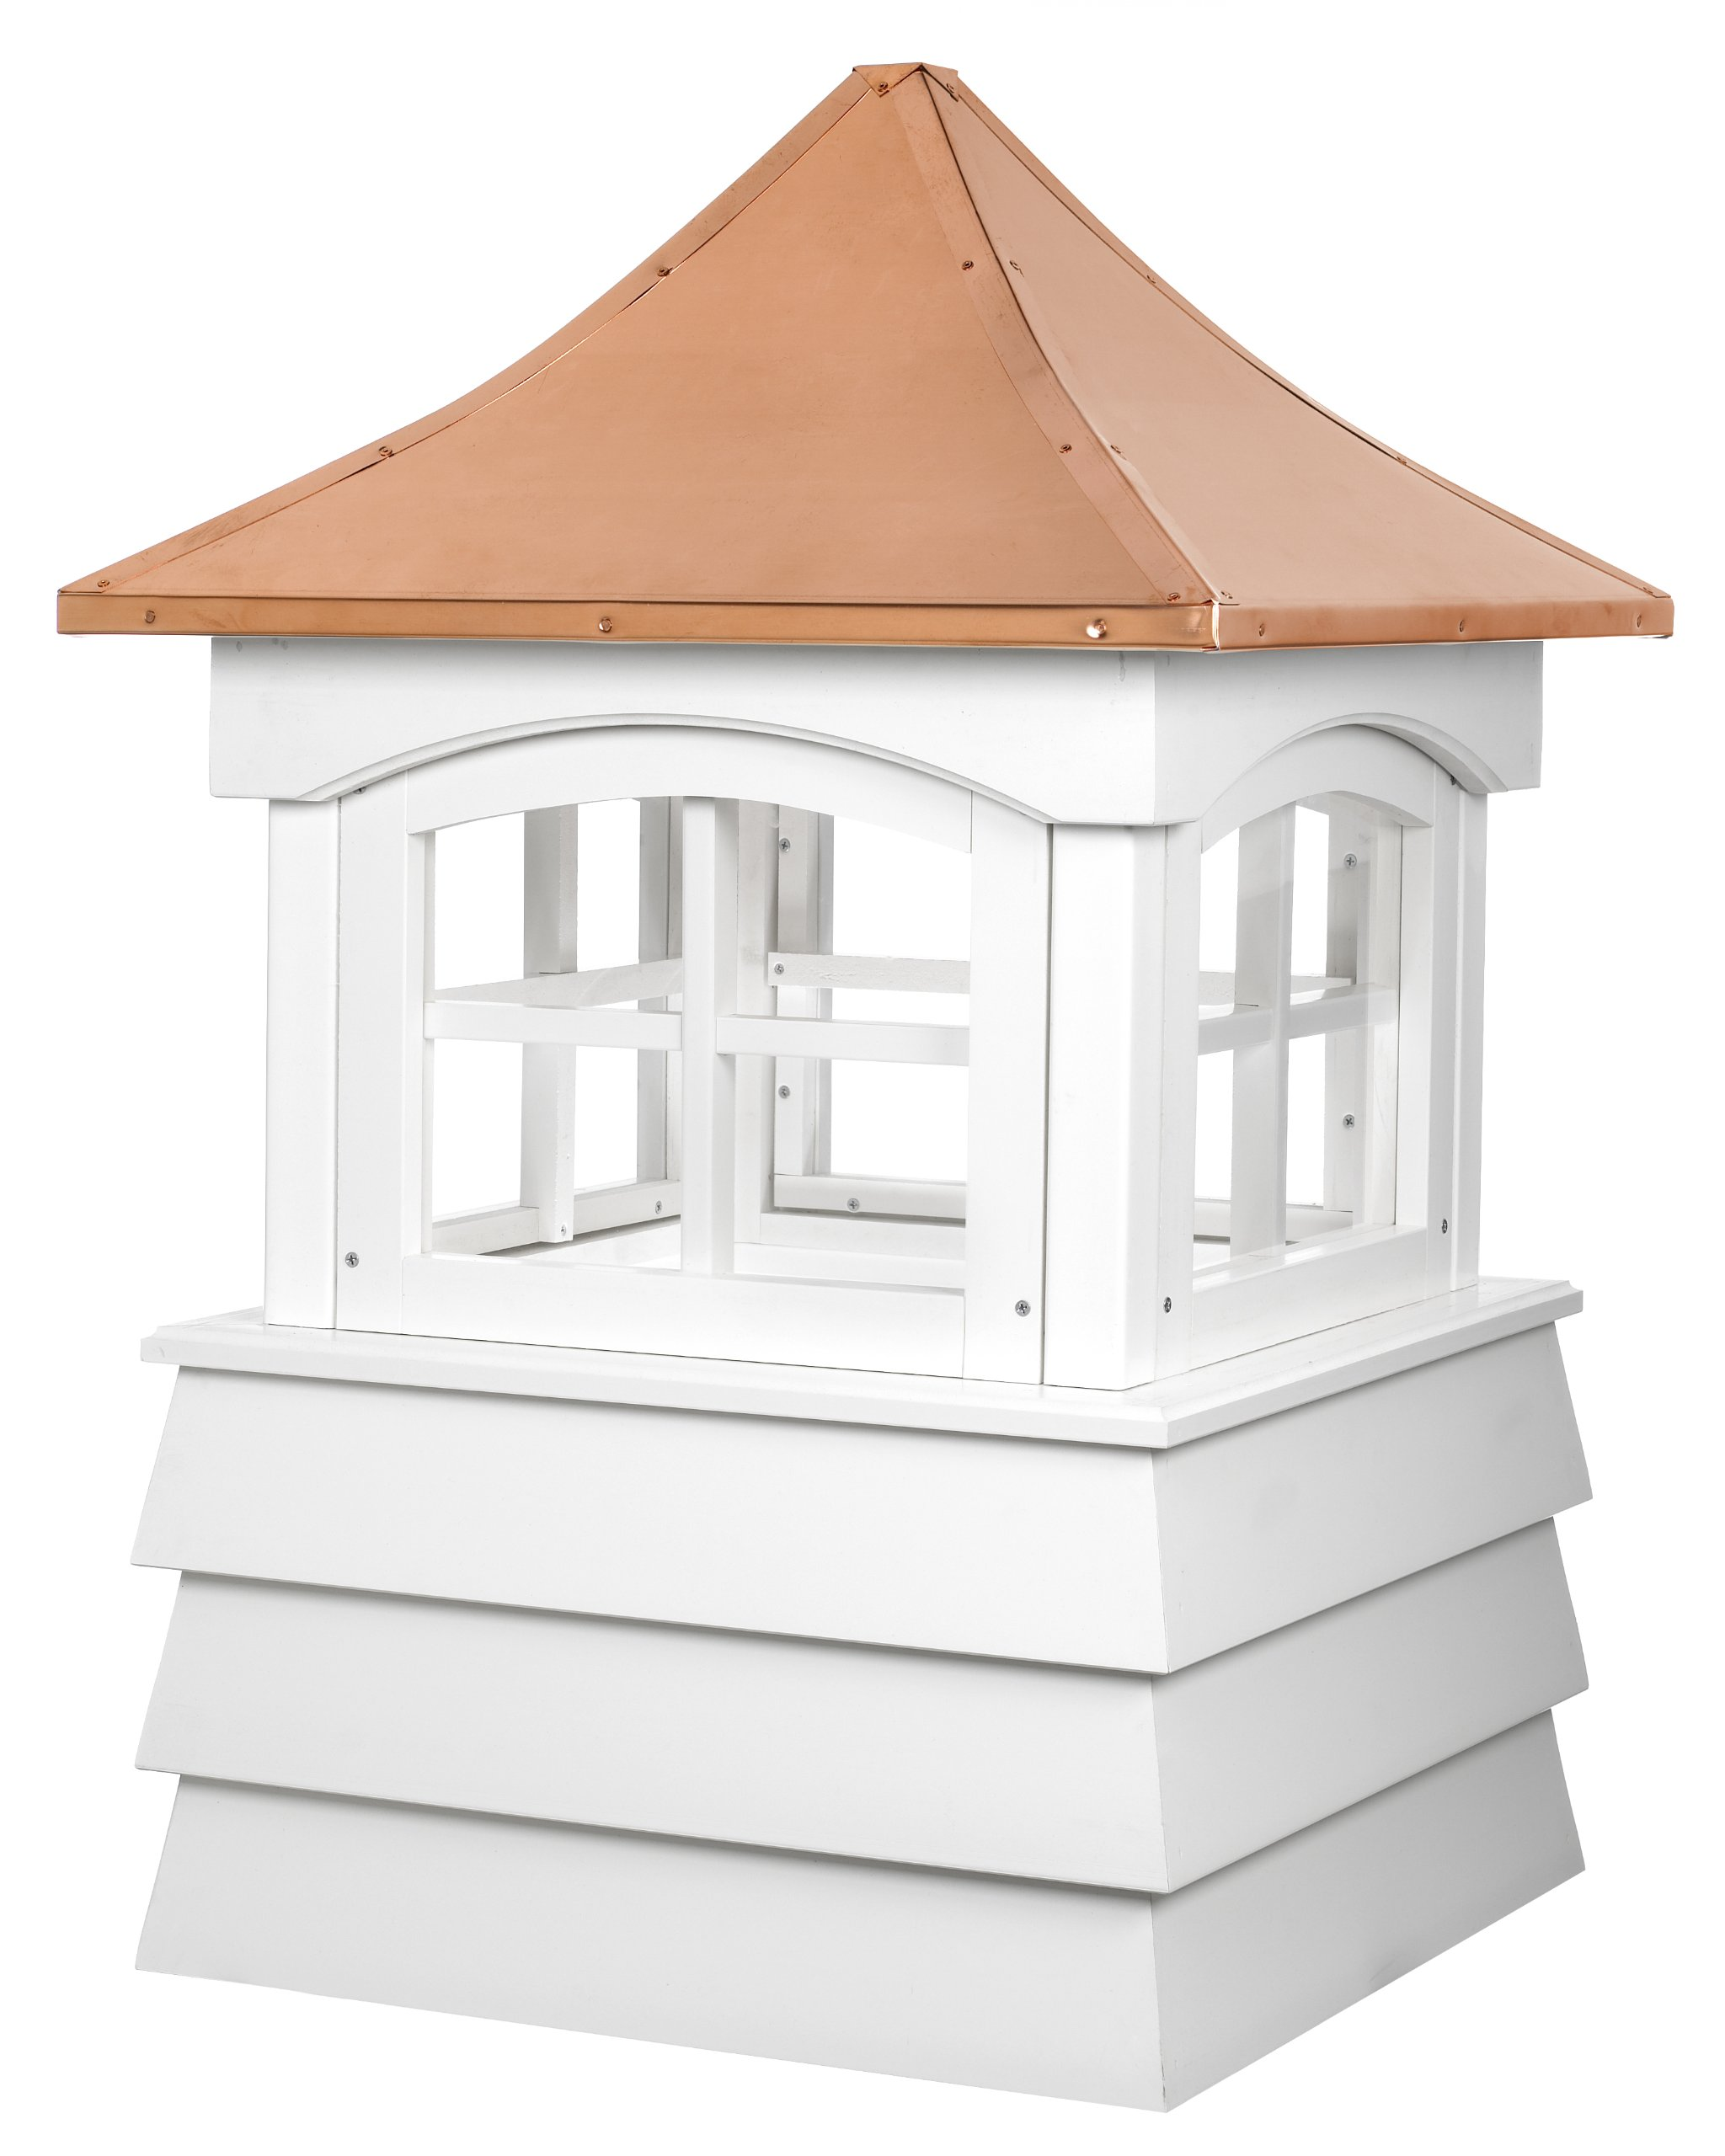 Good Directions Guilford Vinyl Shiplap Cupola with Copper Roof 60'' x 96''